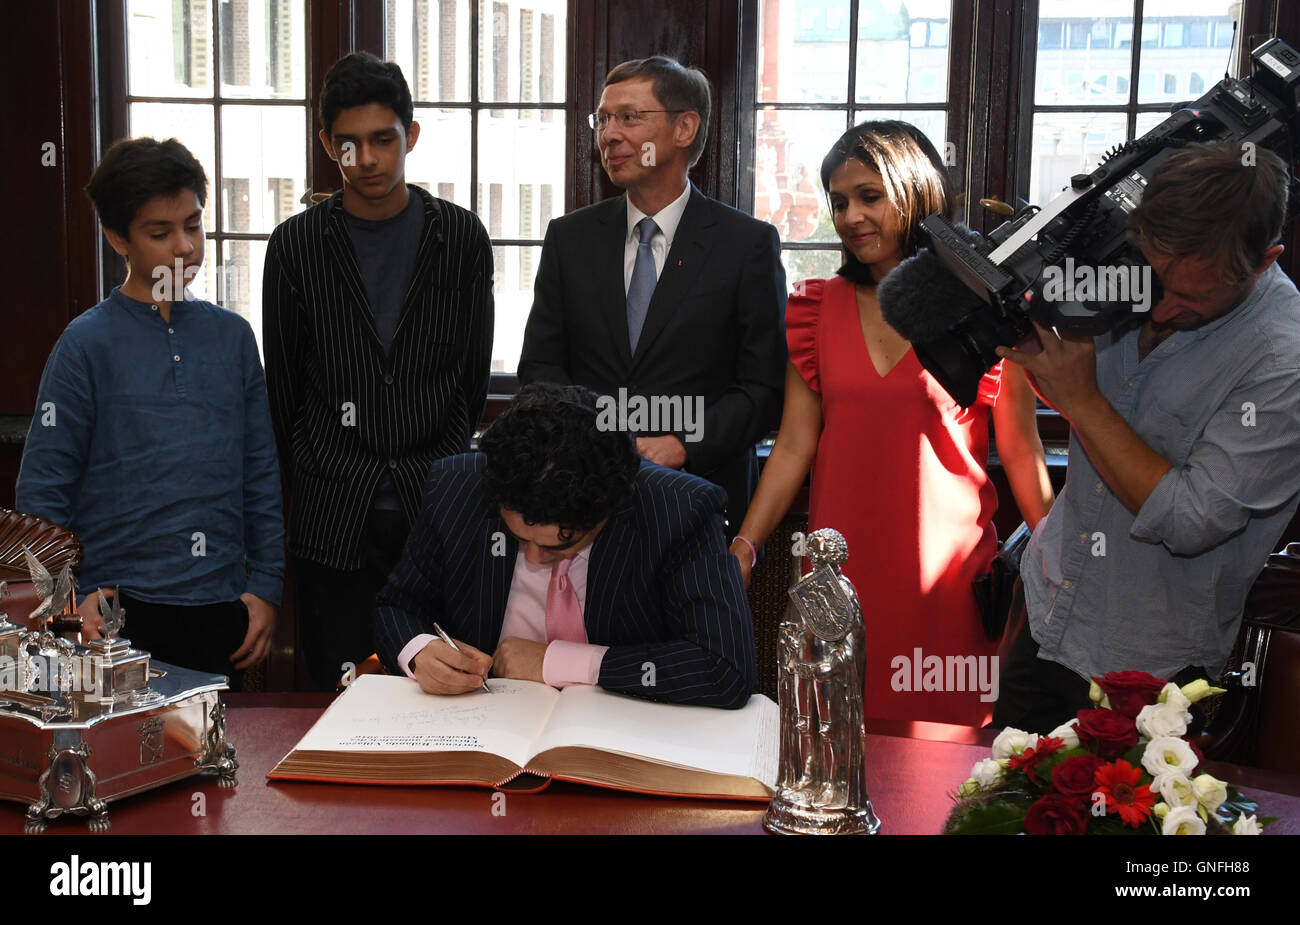 Bremen, Germany. 31st Aug, 2016. Star tenor Rolando Villazon signs the city's golden book in Bremen, Germany, - Stock Image